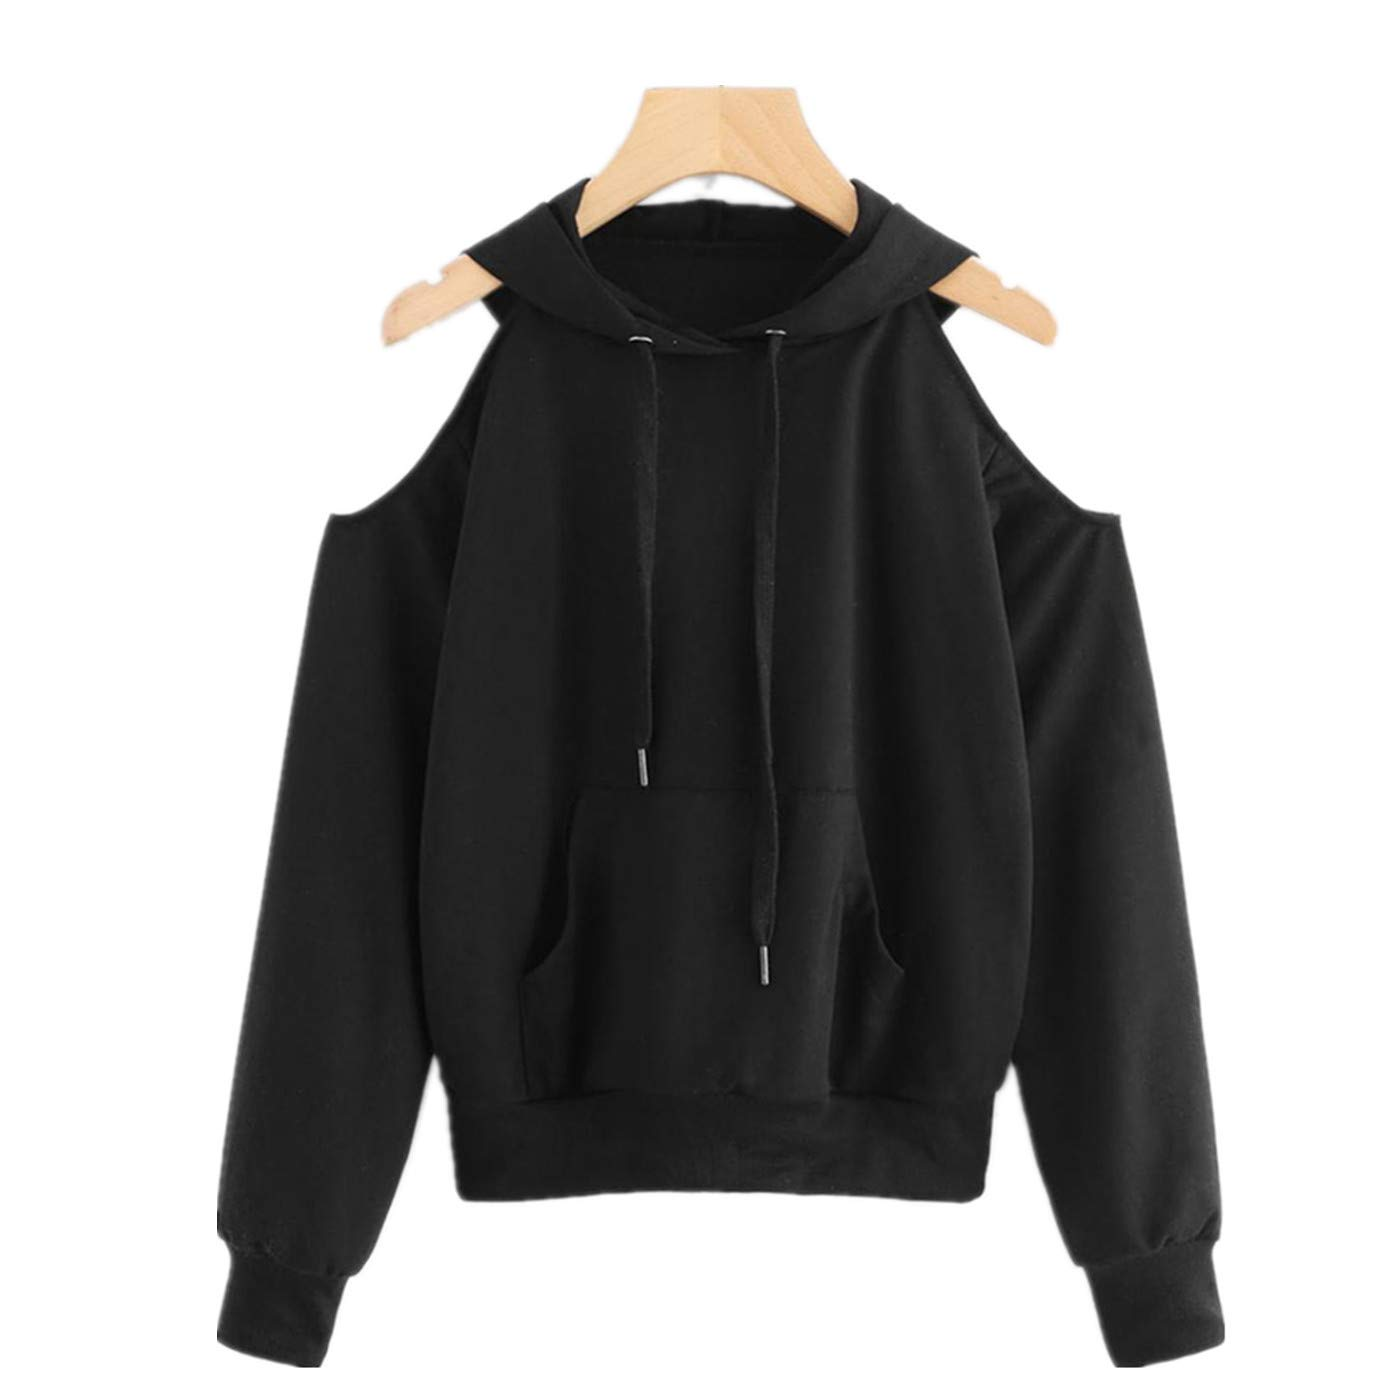 Clearance Sale! Showking@ Women's Hooded, Off Shoulder Sweatshirt Patch Tops Blouse Tops (L, Black)